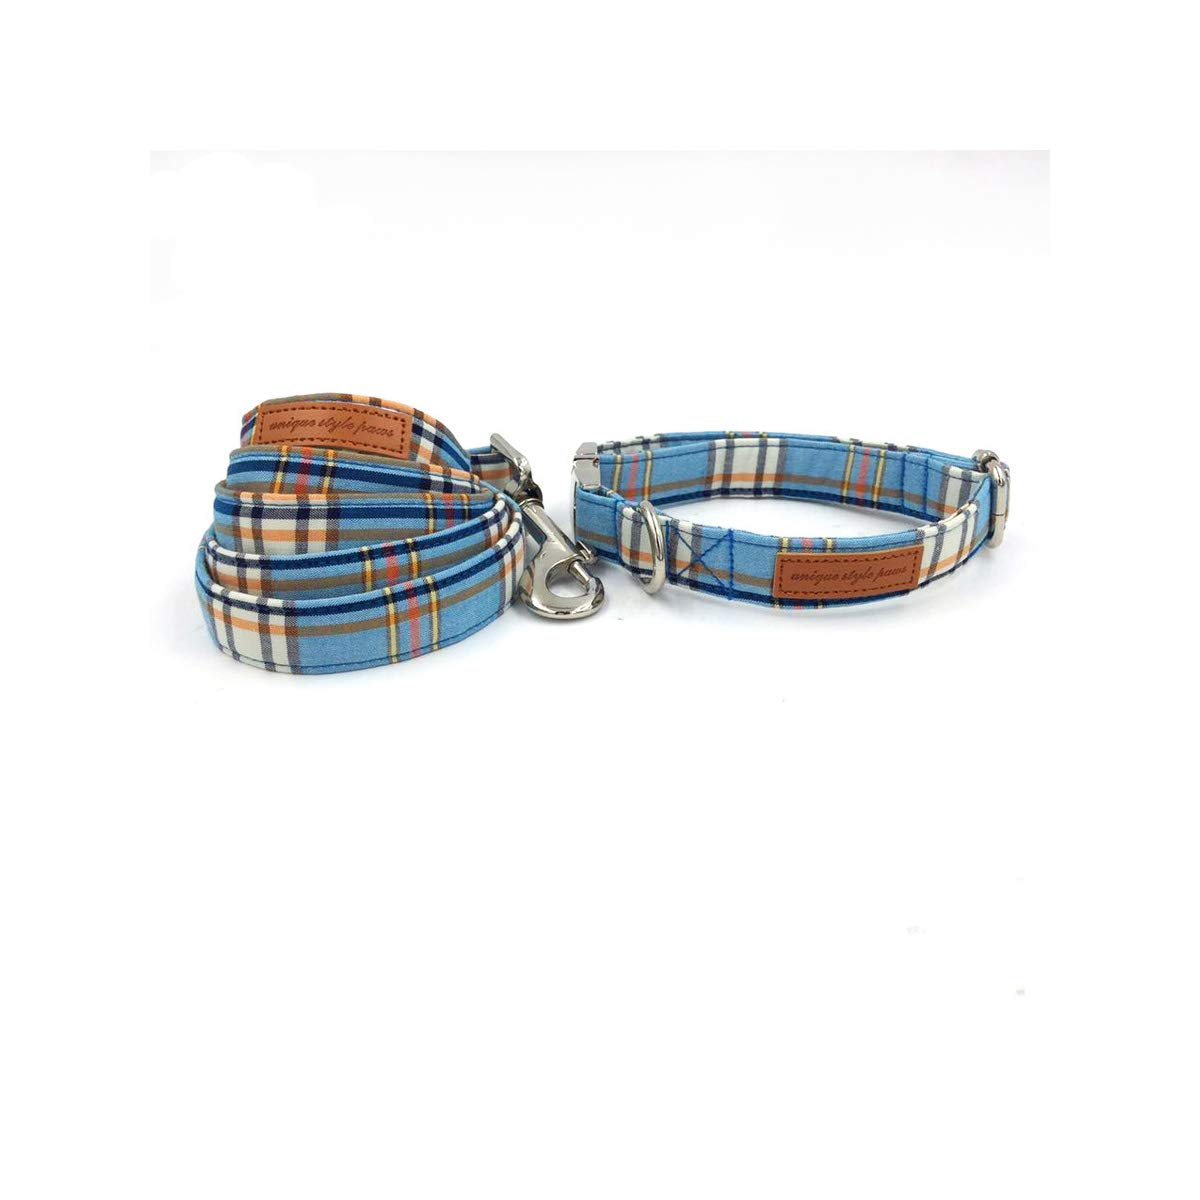 Jesiceeal bluee Plaid Dog Collar with Bow Tie Basic Dog Cotton Dog &Cat Necklace for Pet Gift Collar and Leash XS